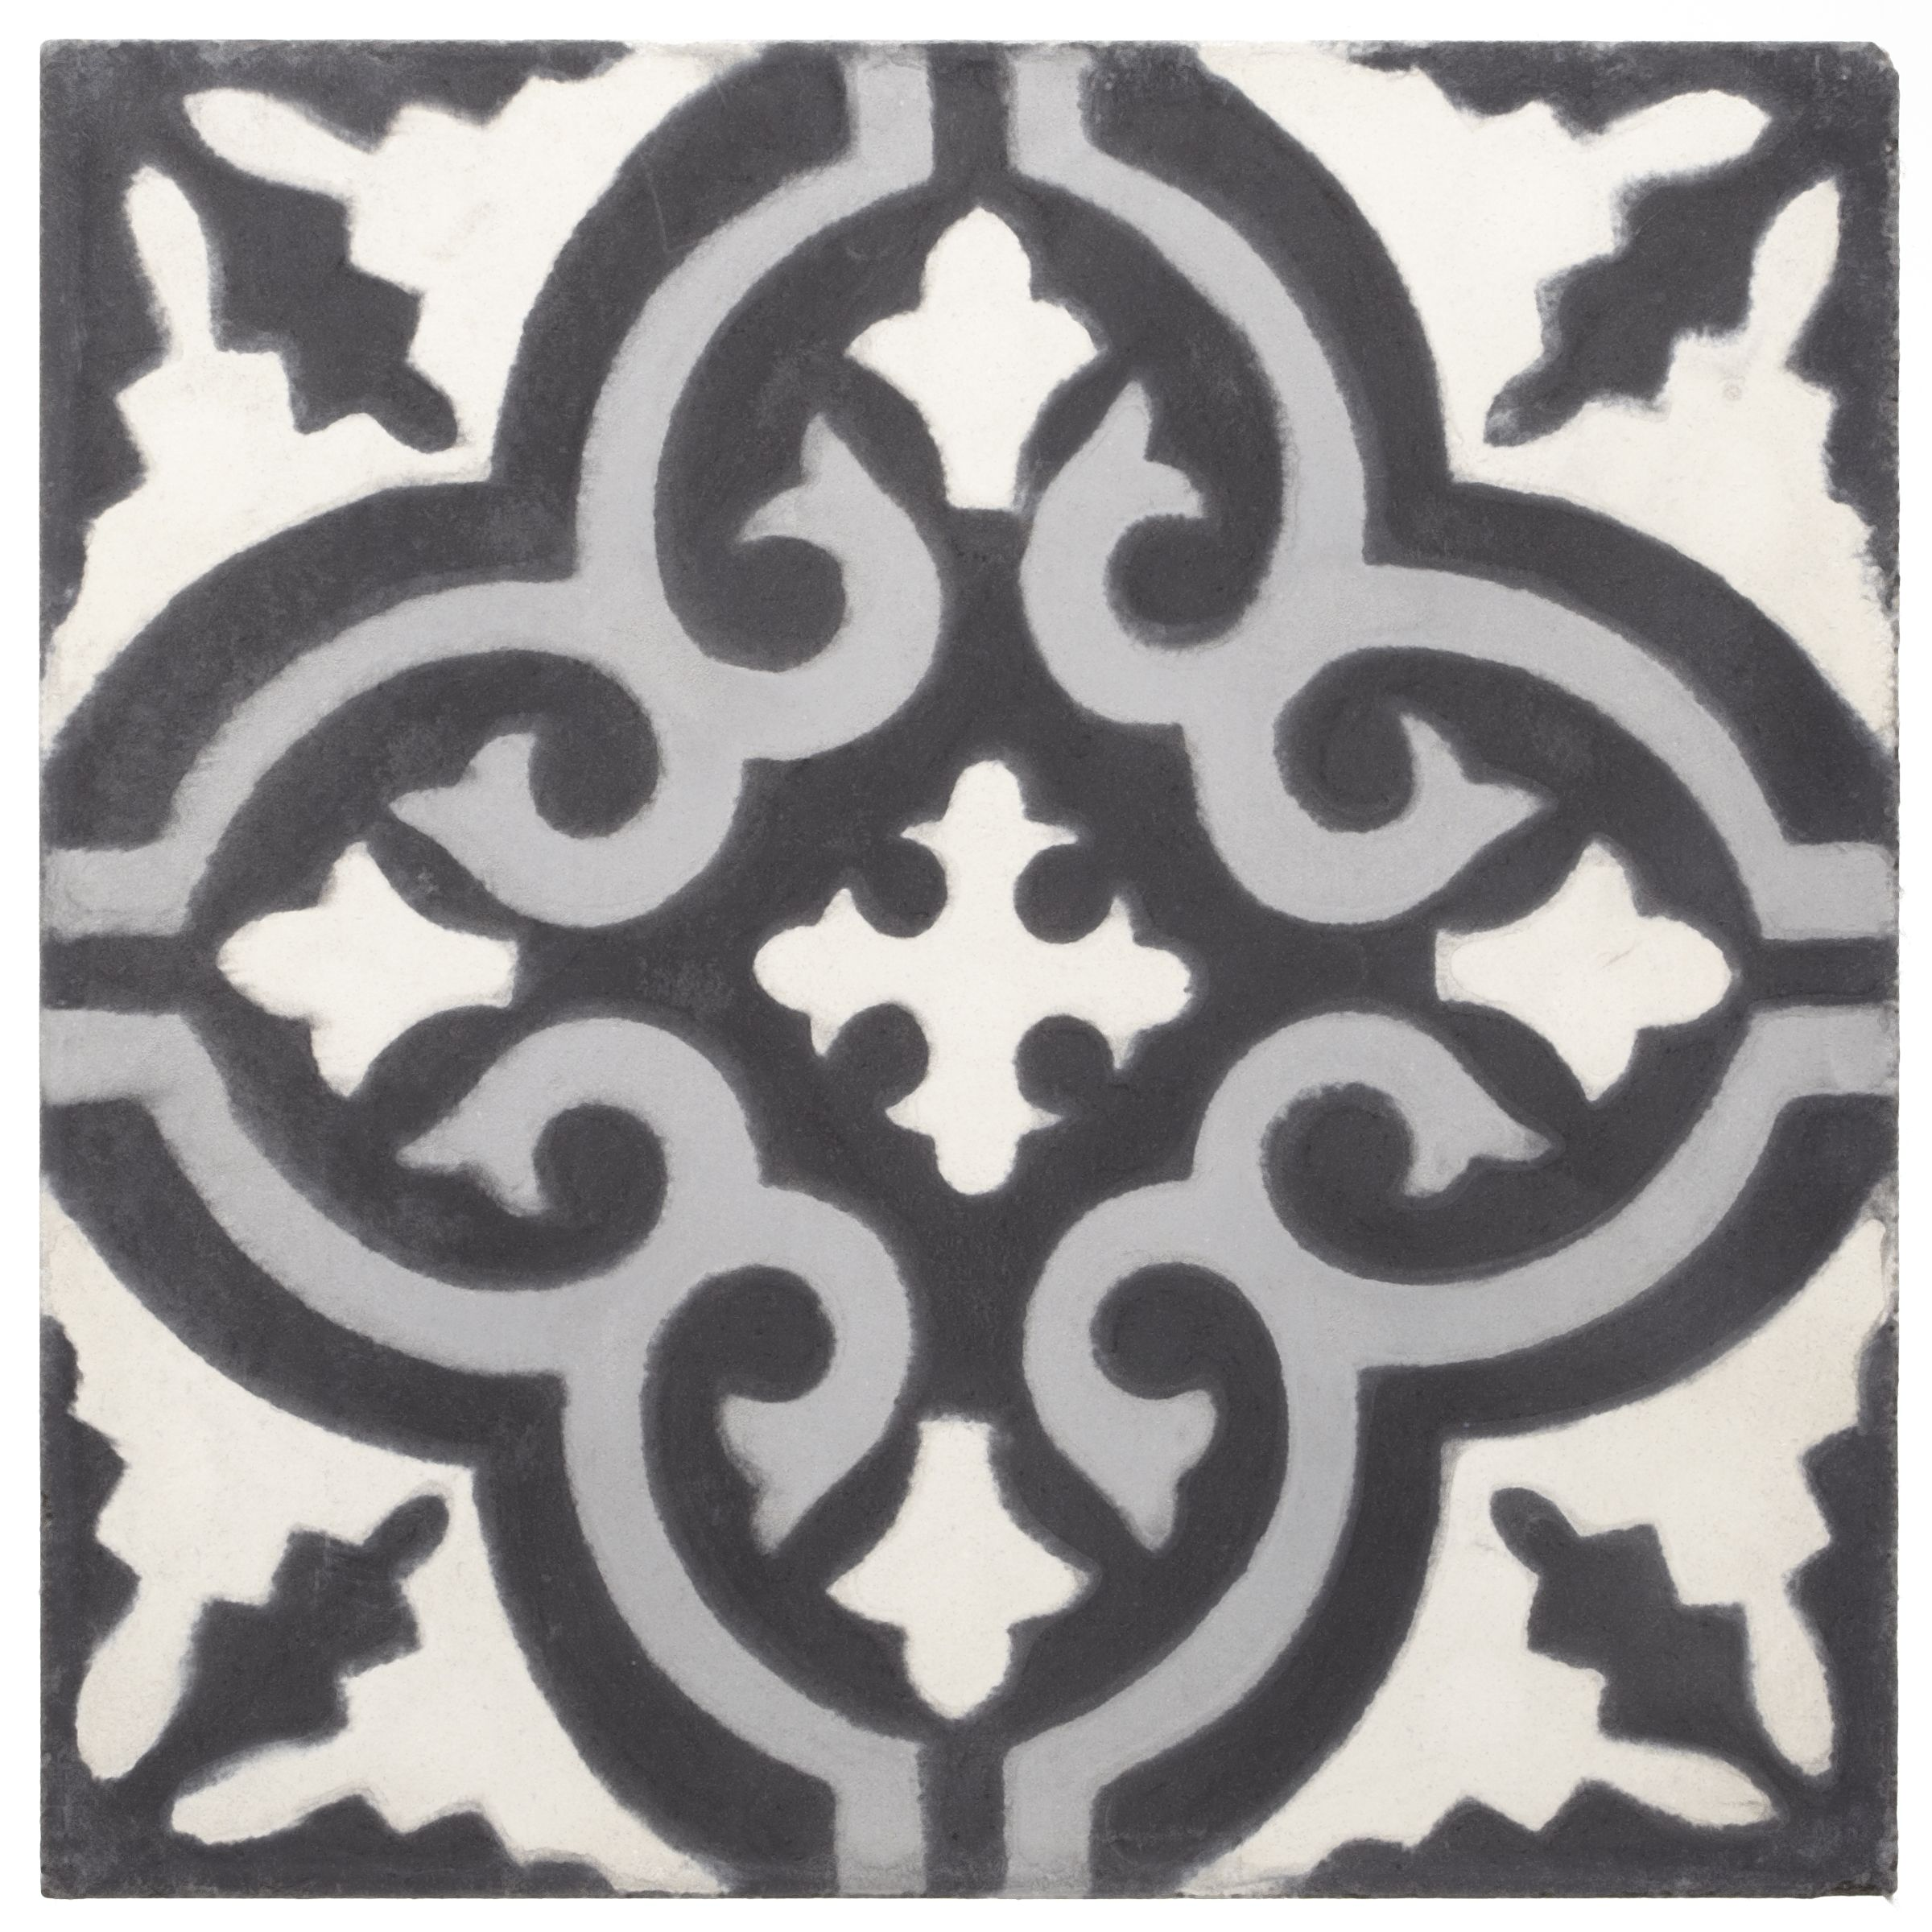 Moroccan tile pattern curtains - Grey And White Patterned Curtains Moroccan Tile Pattern Curtains Moroccan Tile Patterns Related Keywords Suggestions